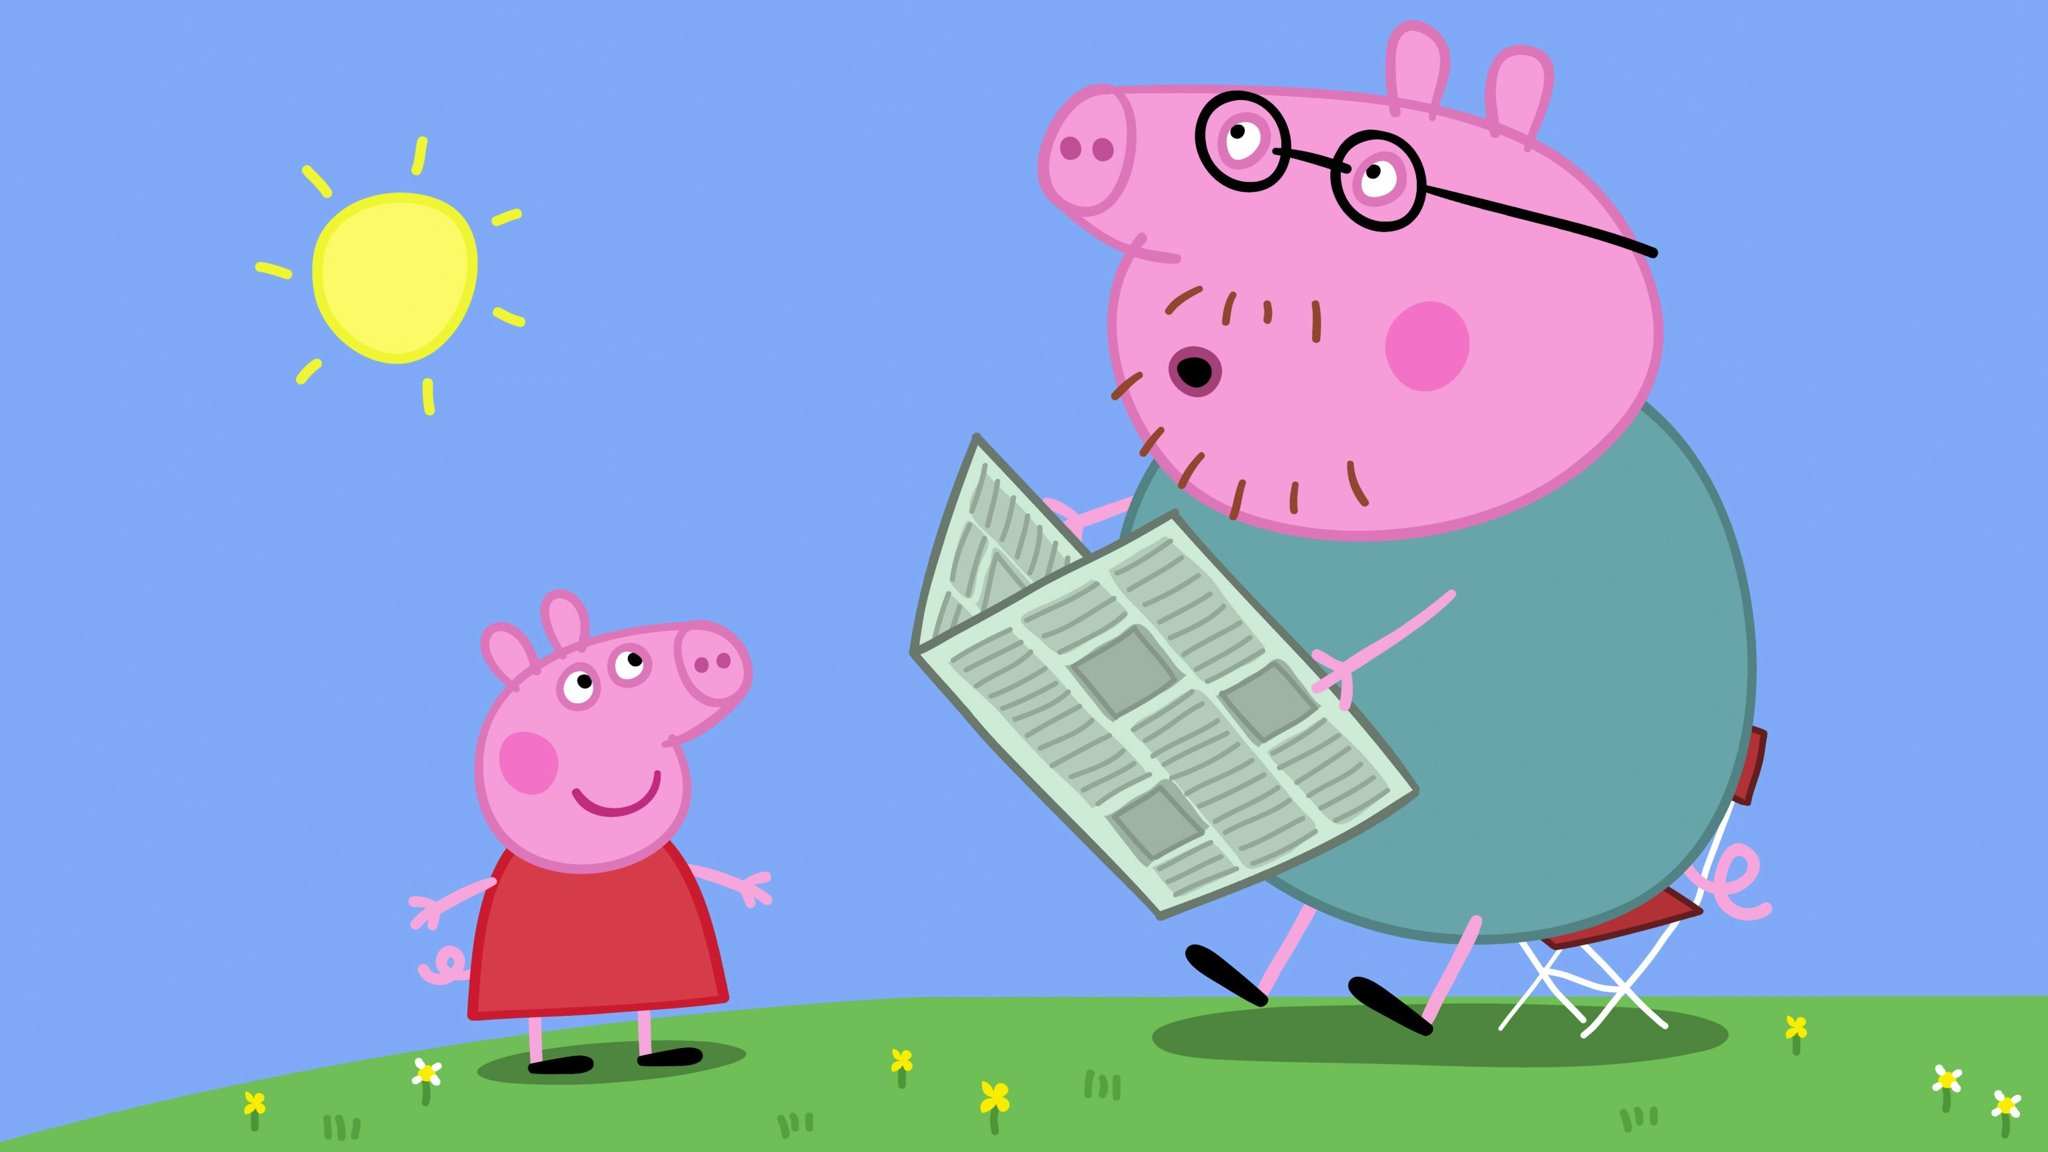 Shares In Peppa Pig Owner Entertainment One Fall On Refinancing